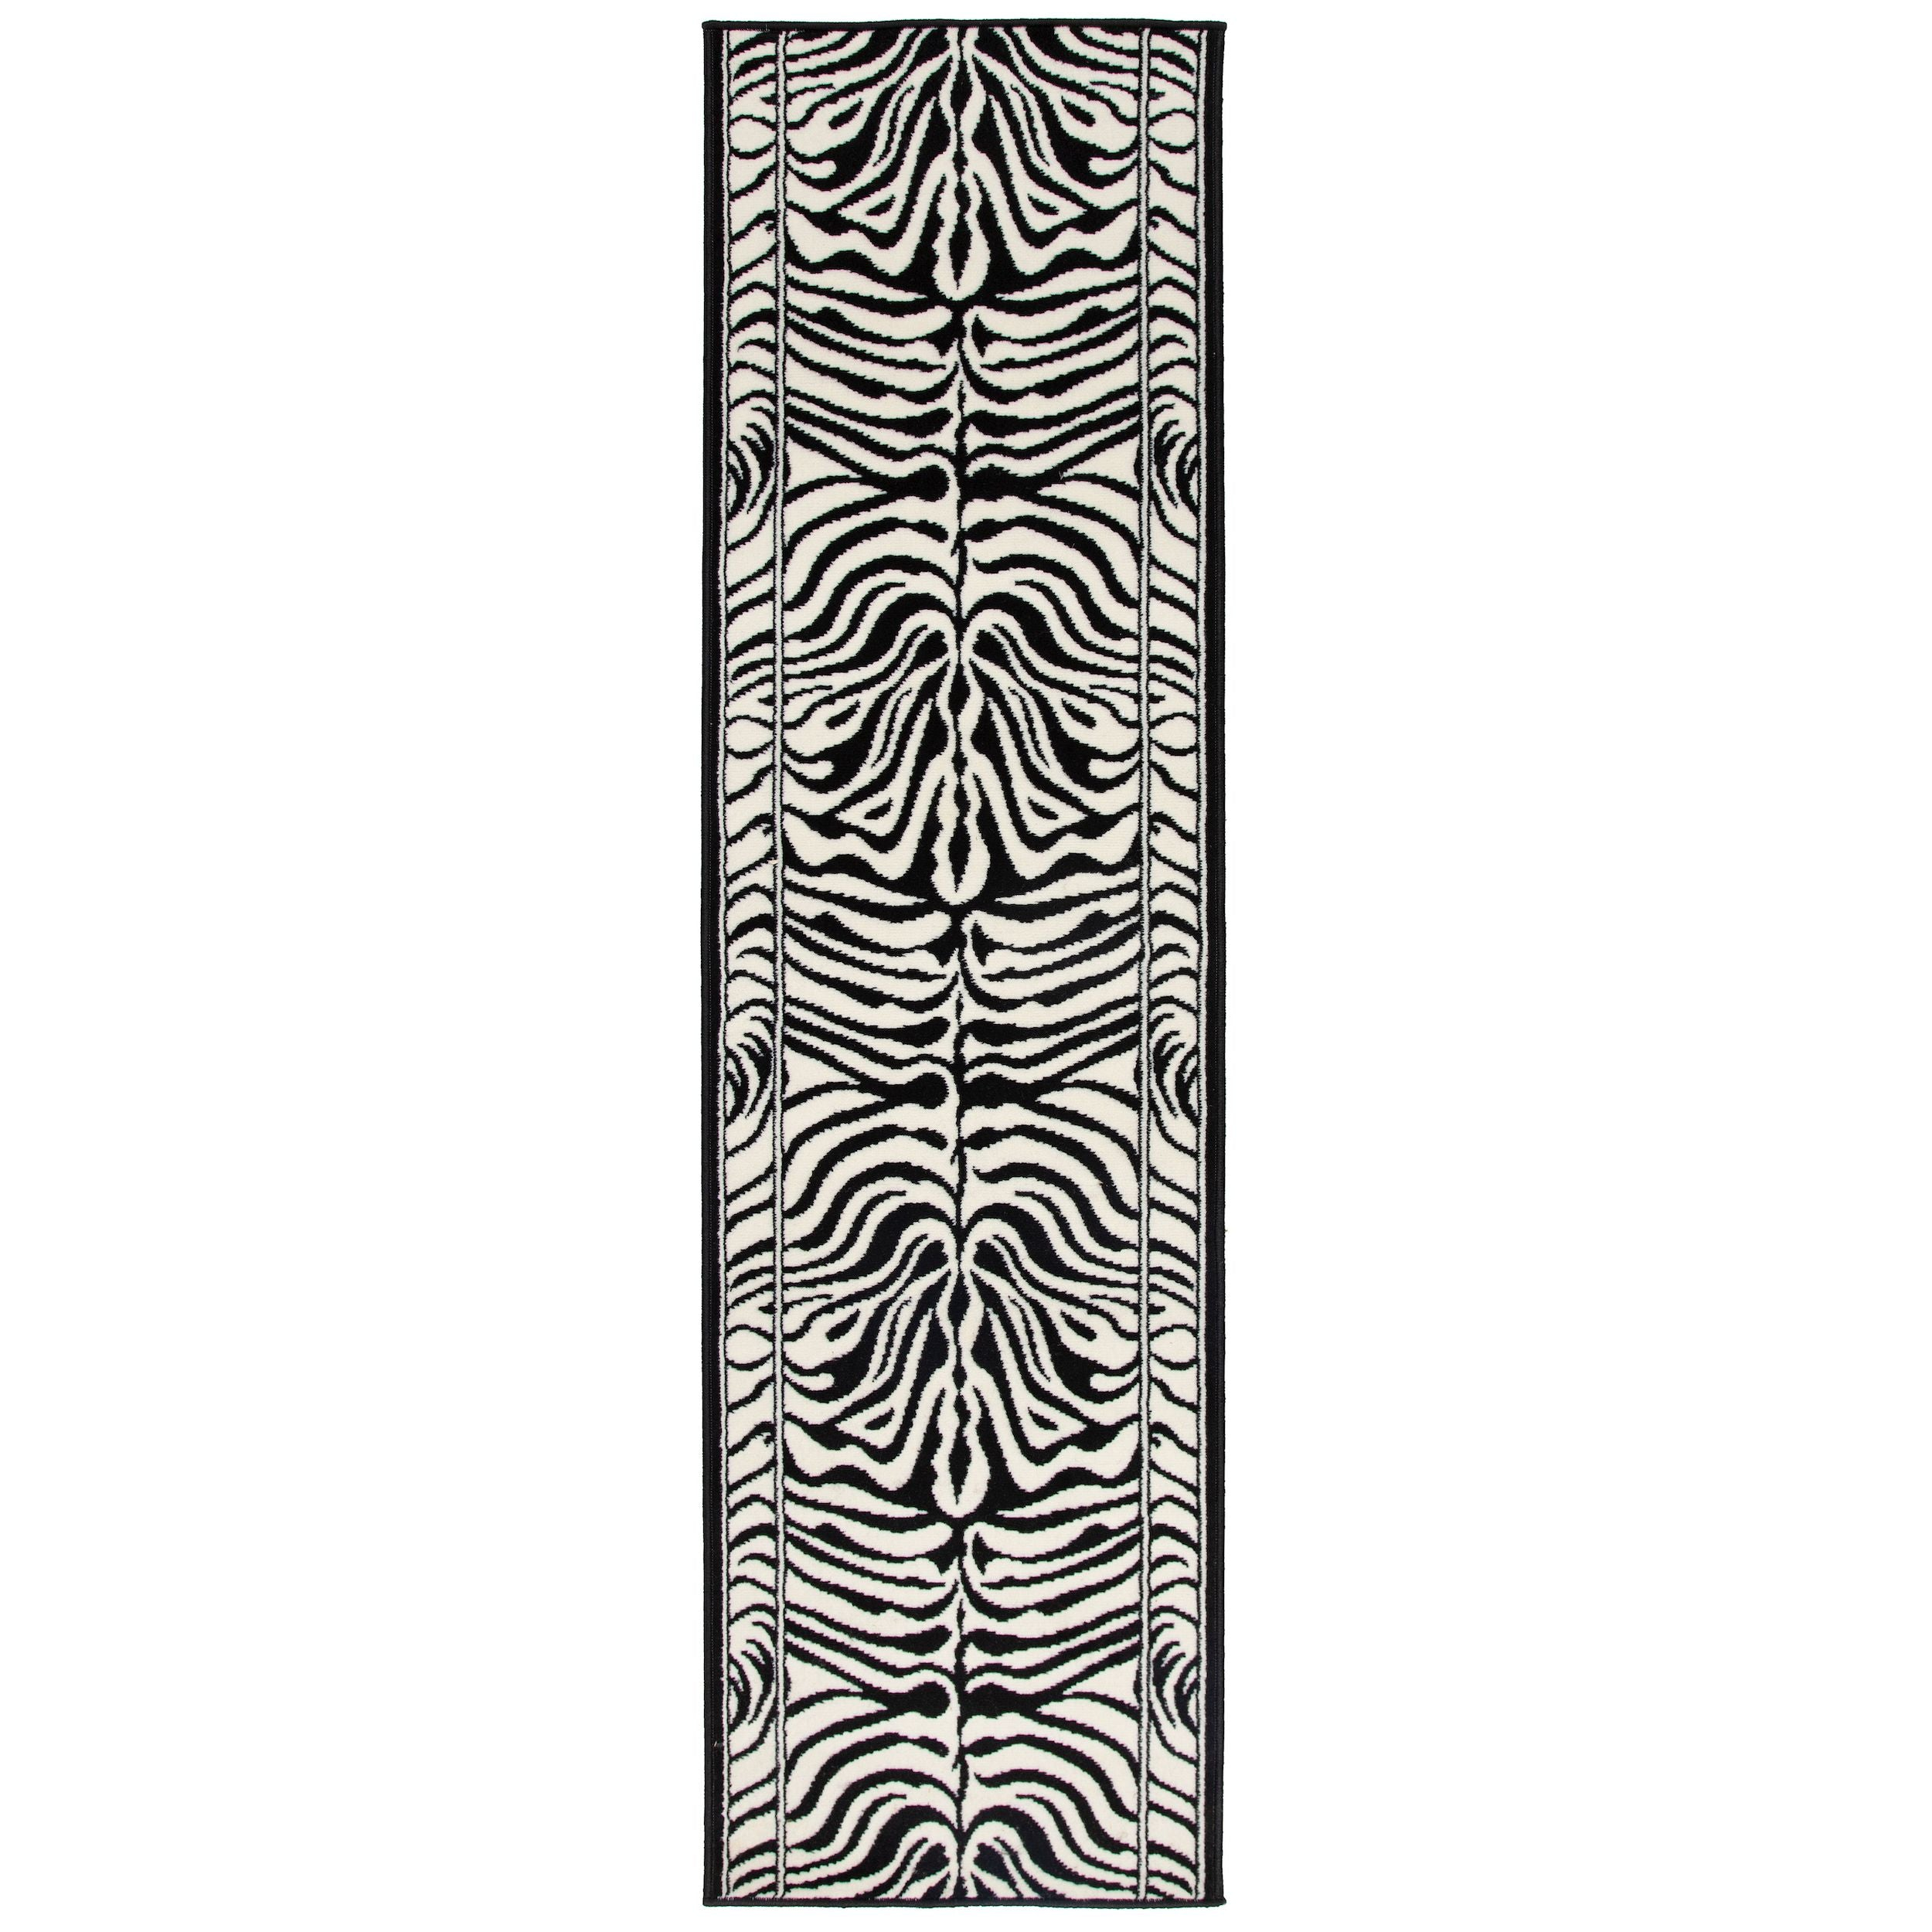 Zebra Print Stair Runner | Rug Masters | Free UK Delivery